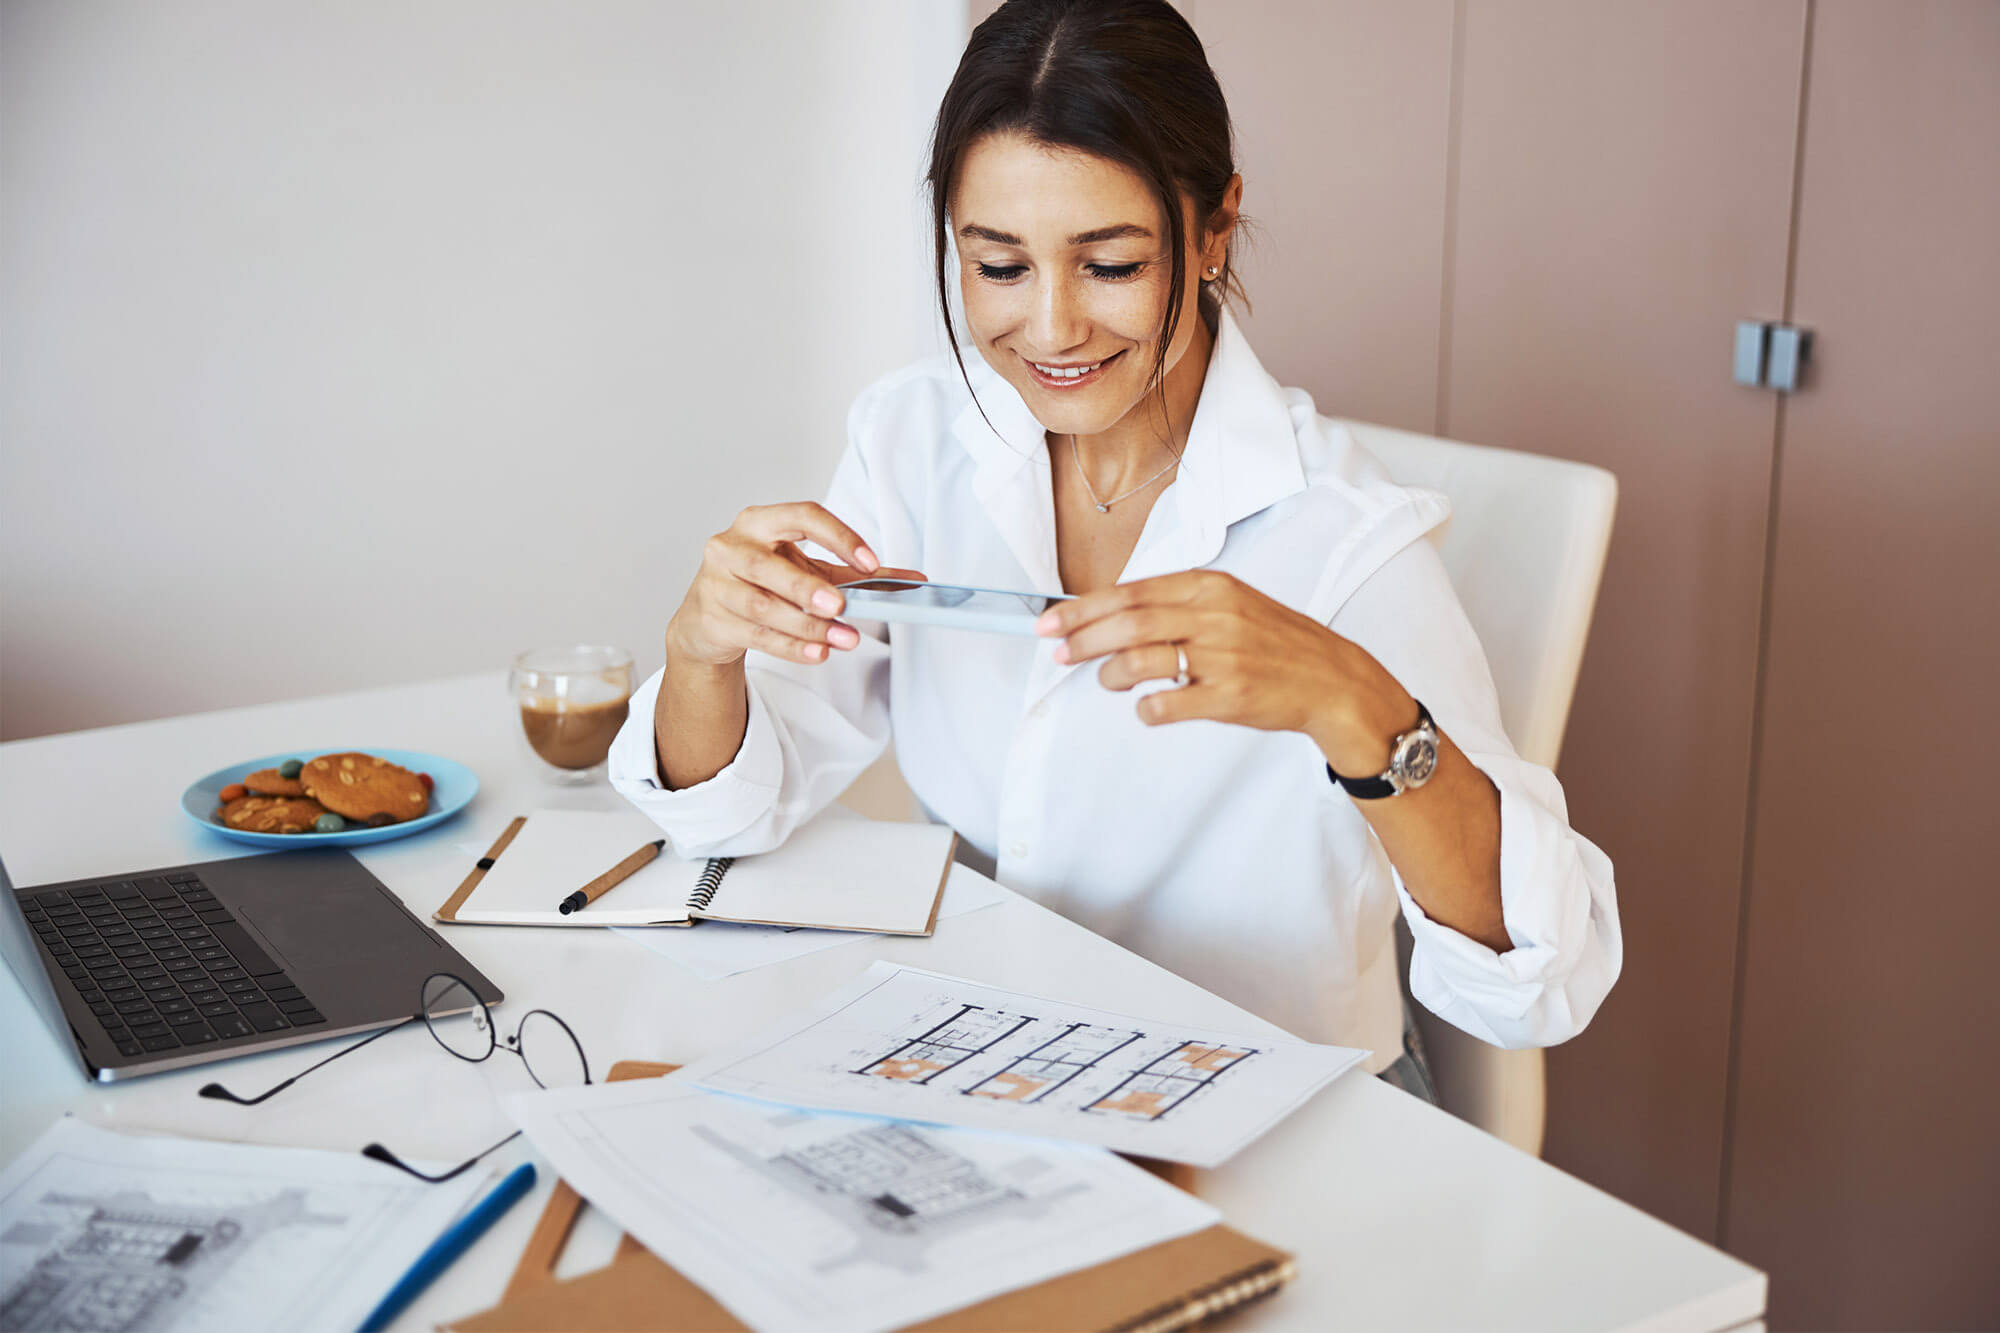 a woman in a white blouse has papers spread across desk and takes picture of it with phone